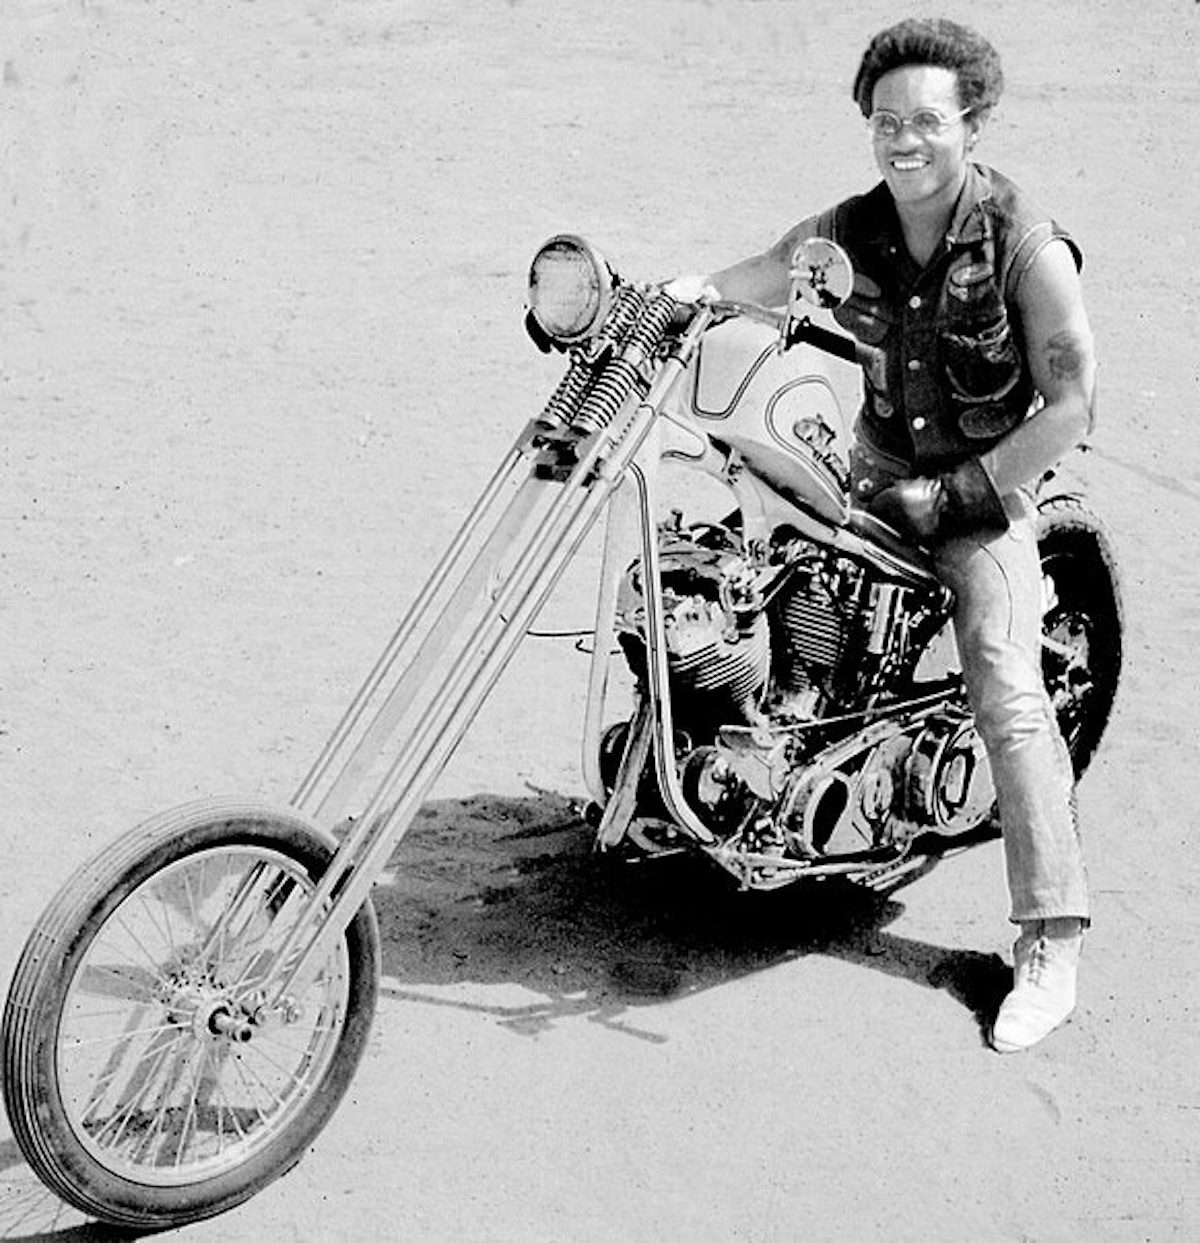 Clifford Vaughs on a chopper in the 1960s